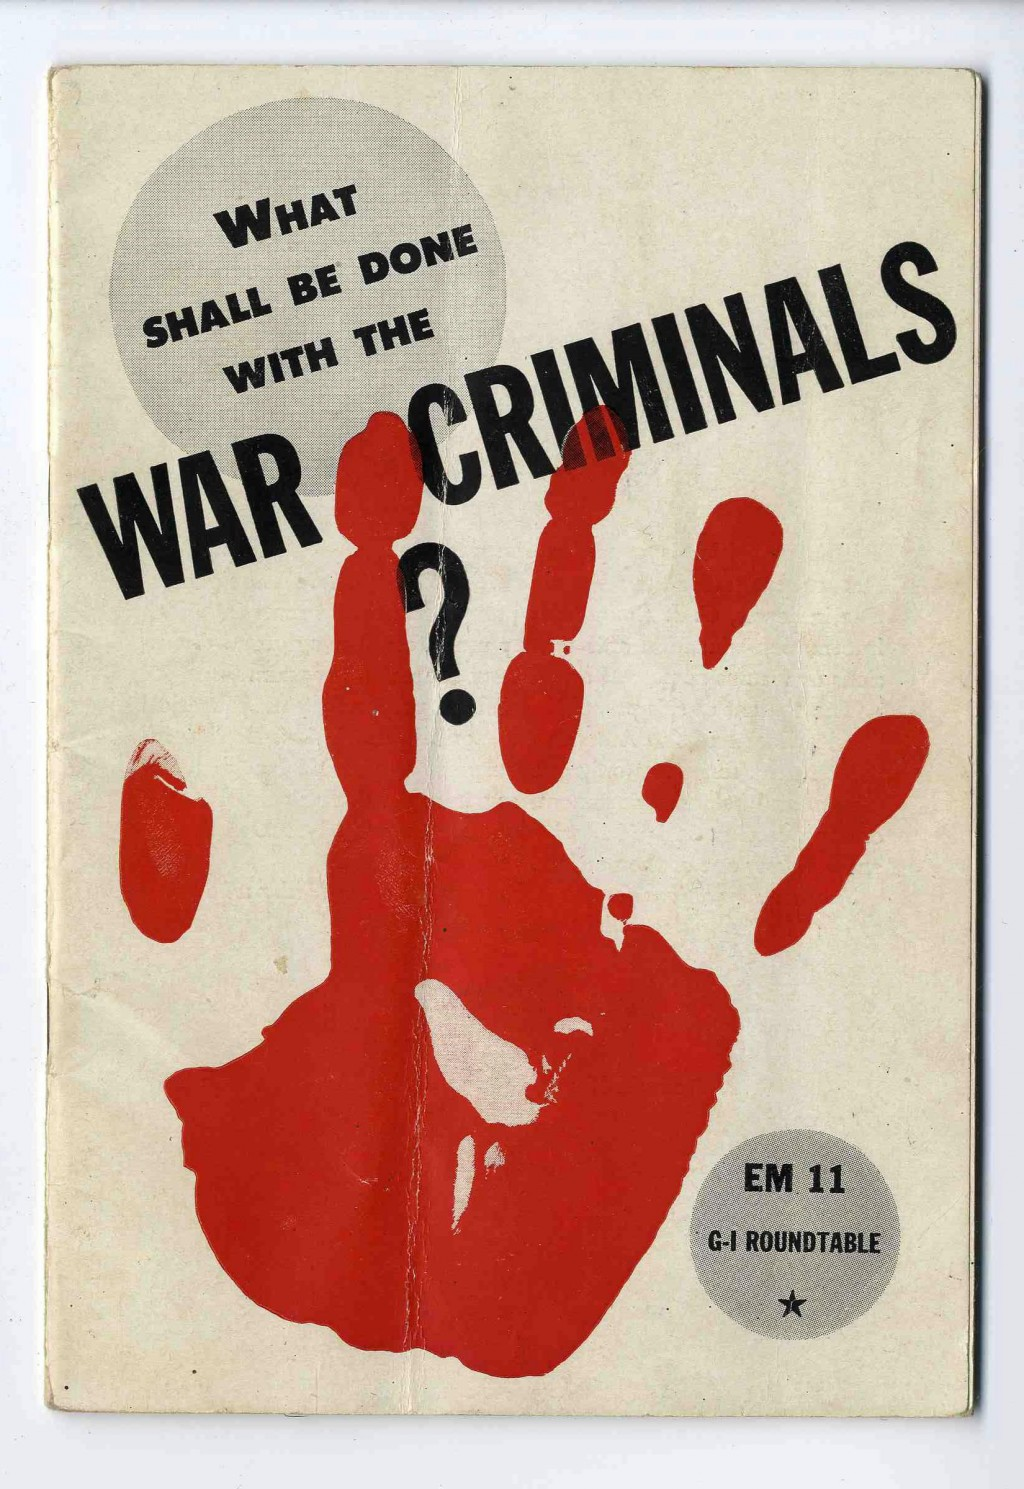 """What shall be done with the war criminals?"" [LCID: 20058y6y]"